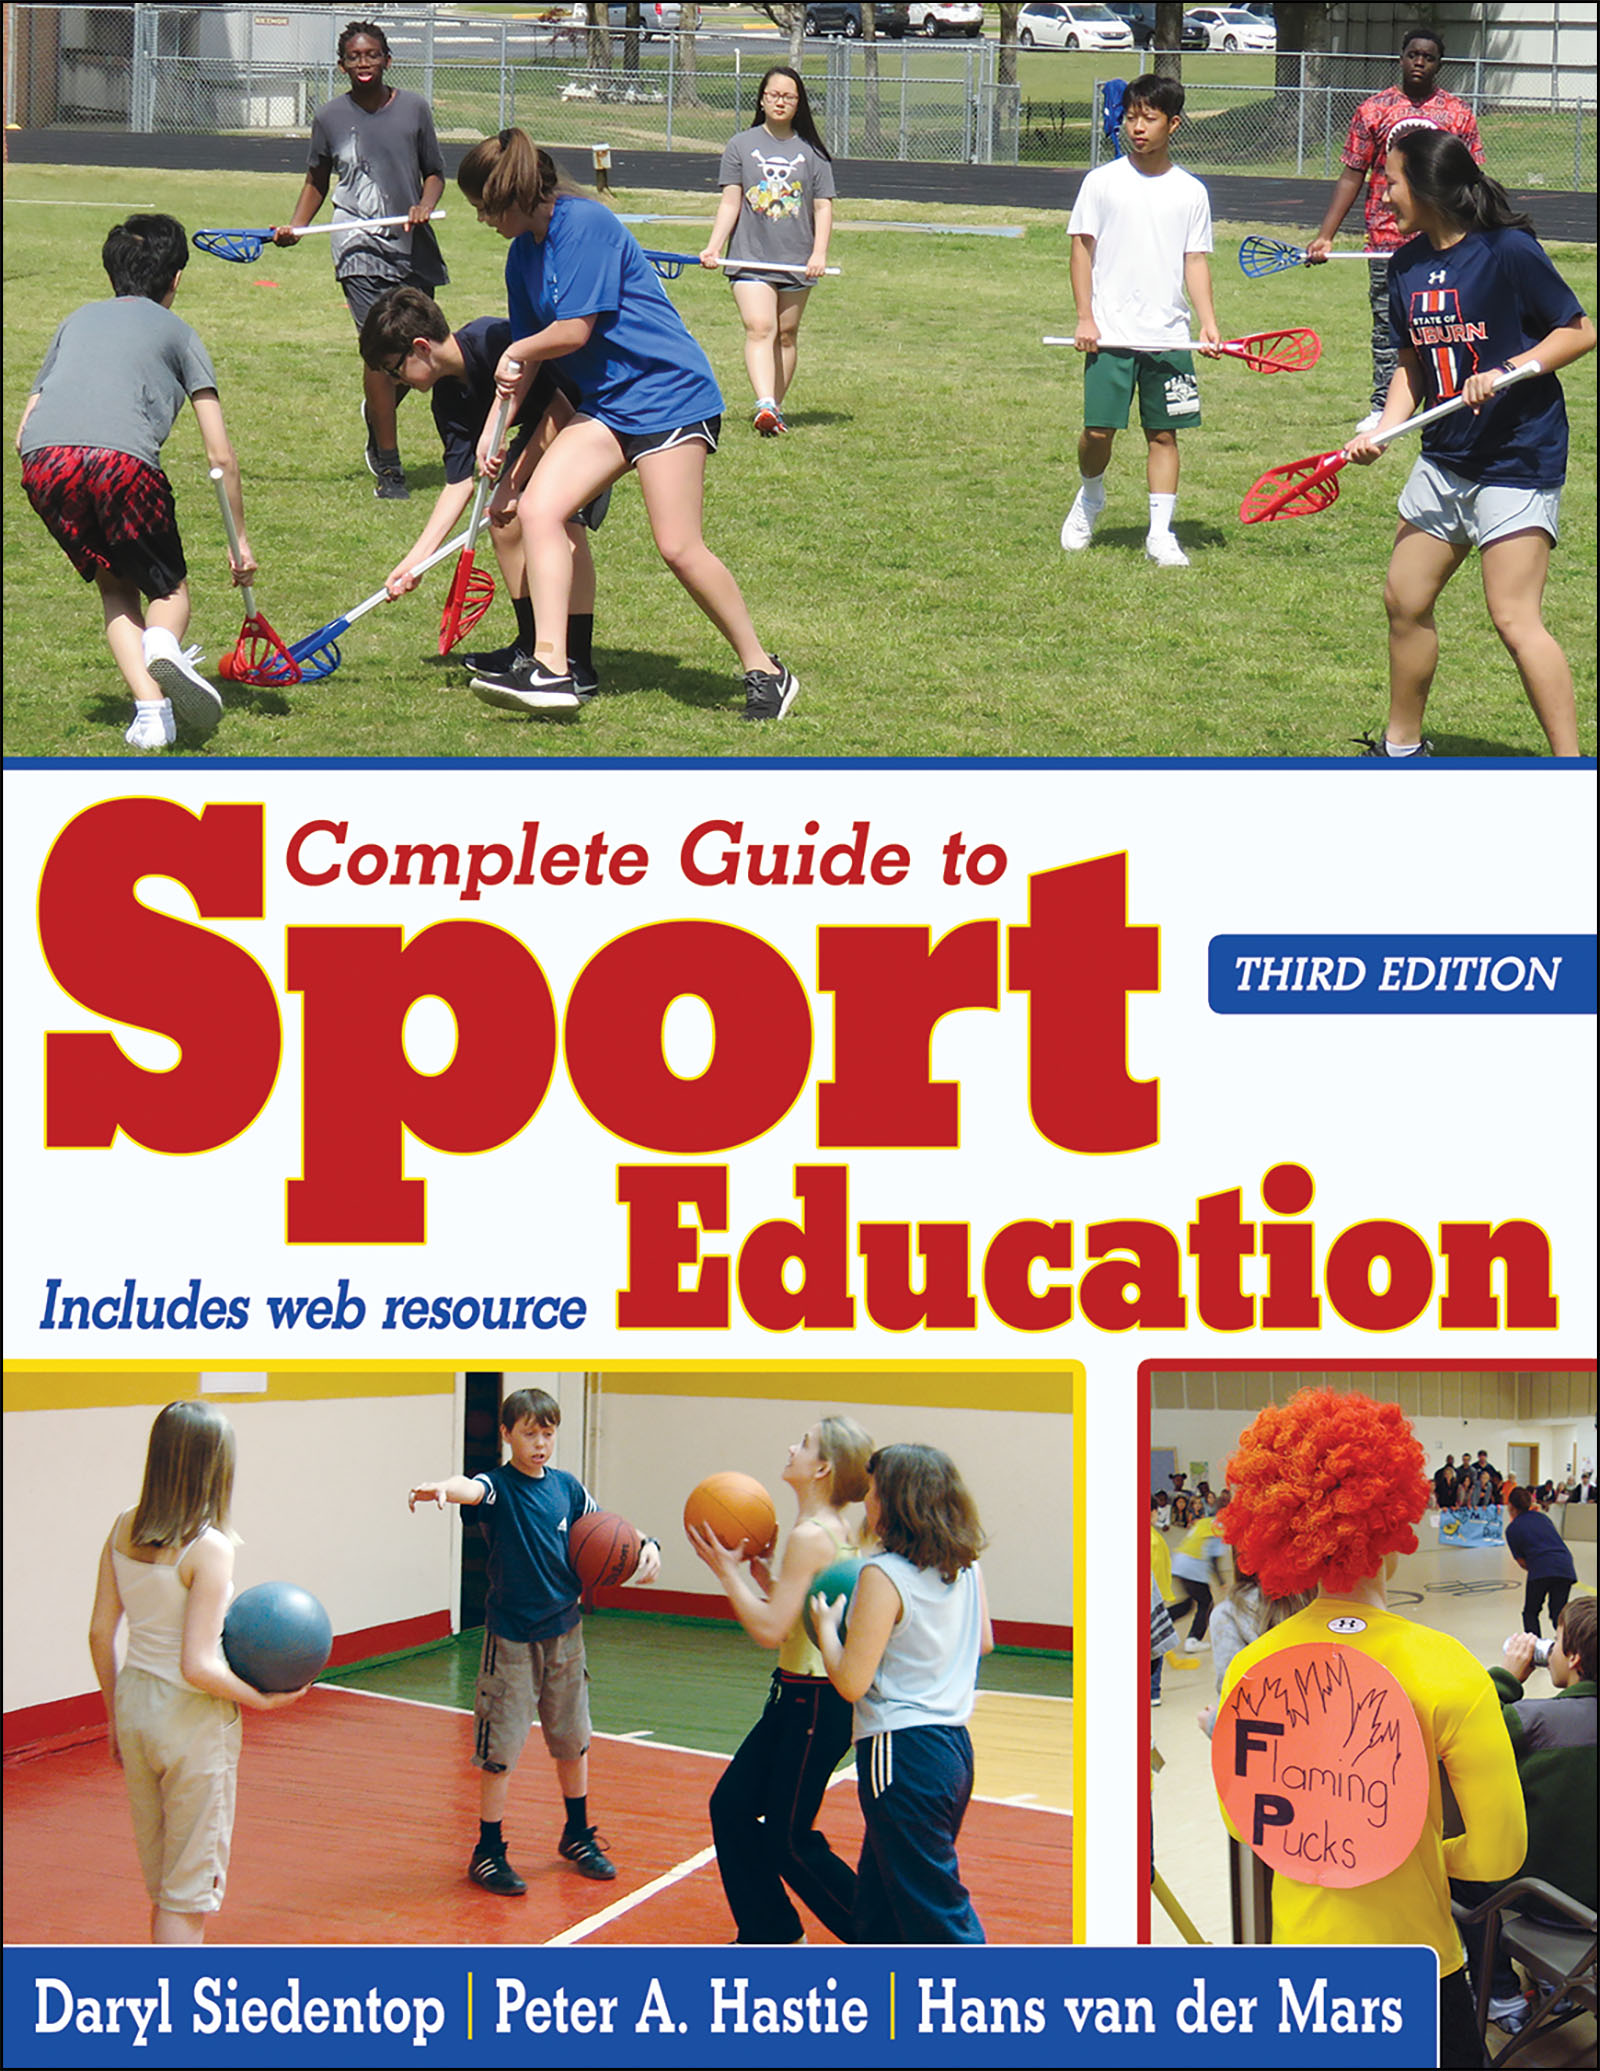 Complete Guide to Sport Education 3rd Edition With Web Resource